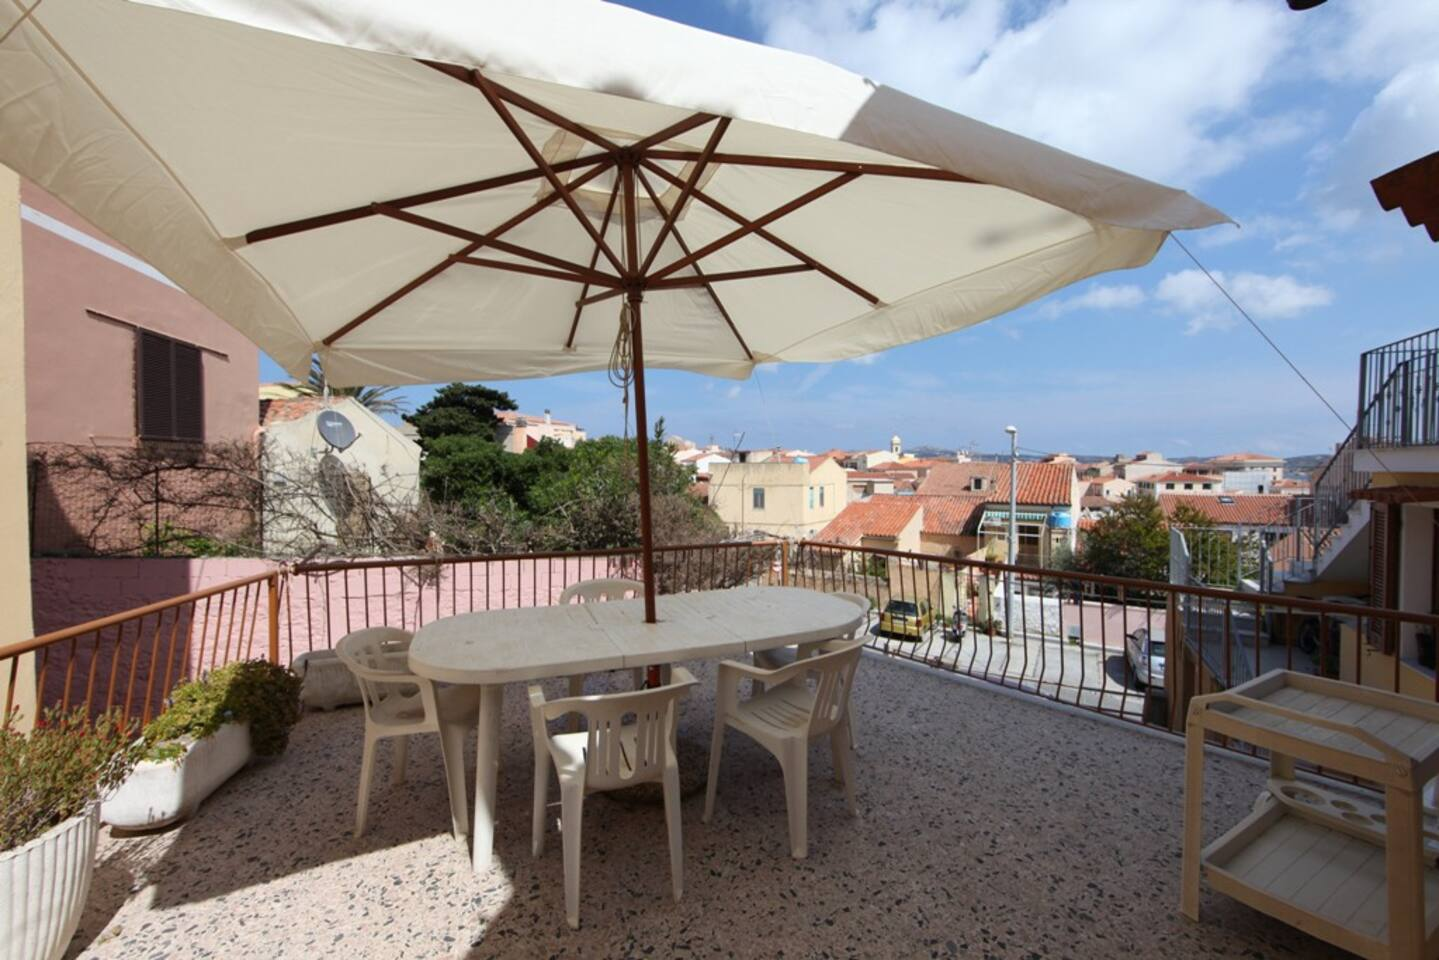 25 m2 terrace on the rooftops of the village old town